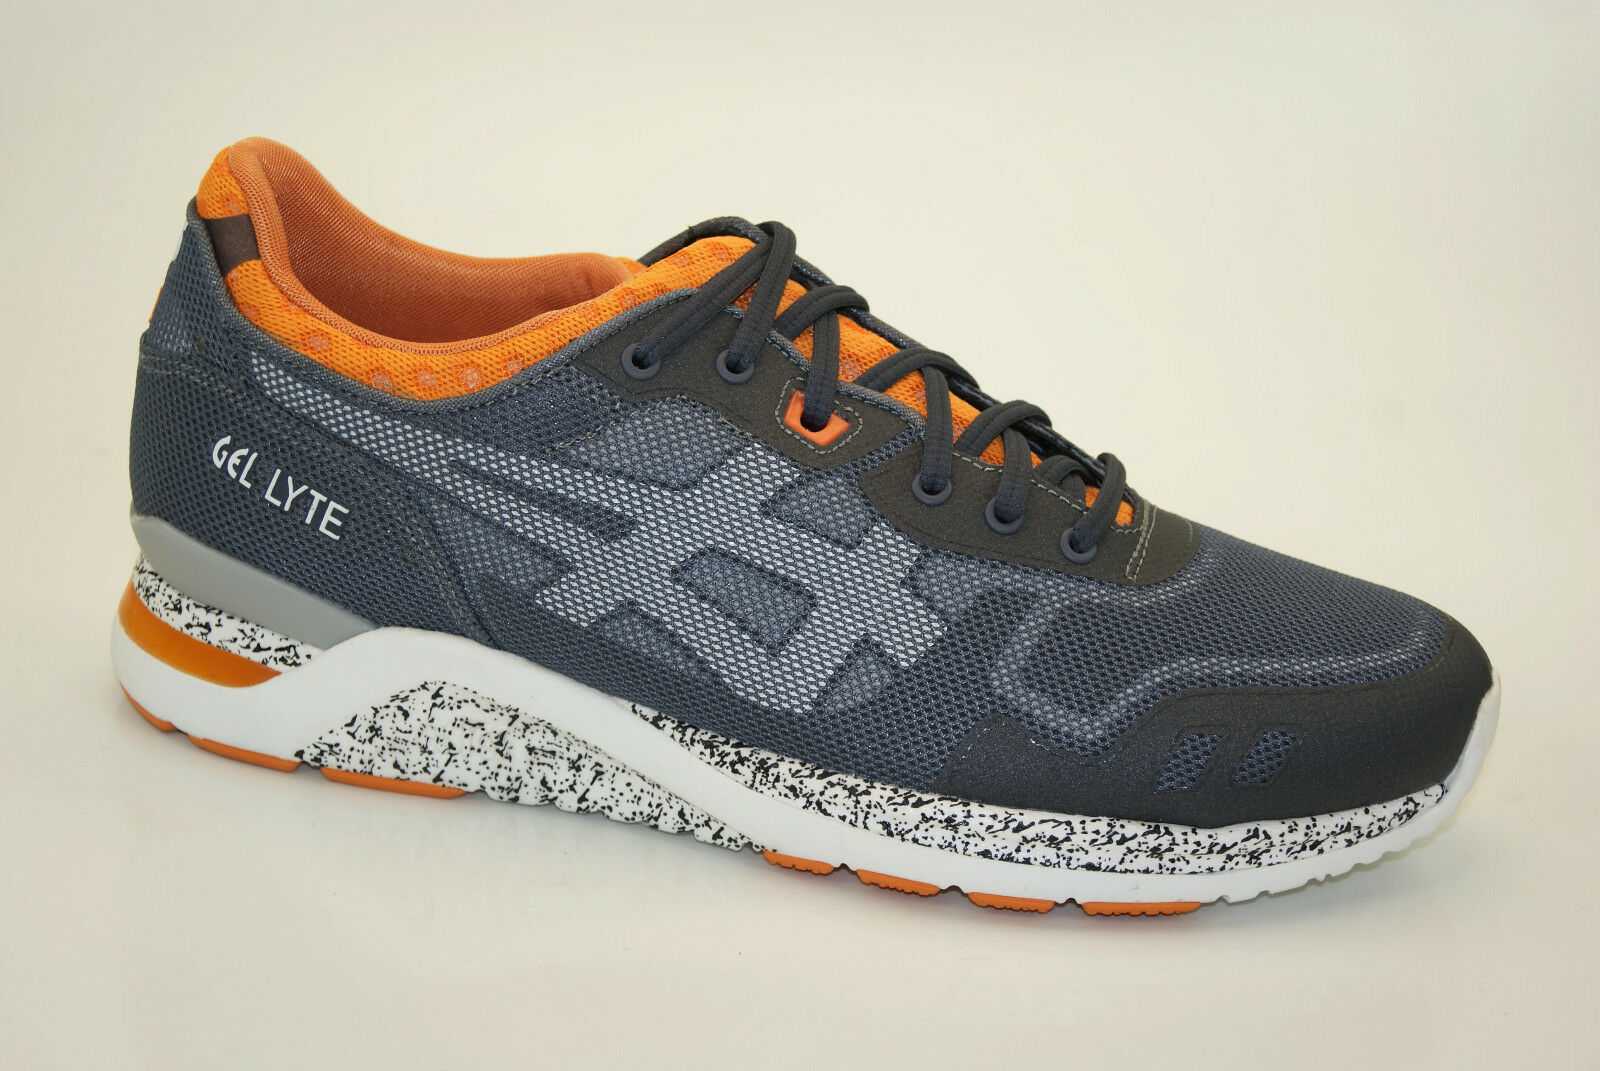 Asics Gel-Lyte Evo Sneakers Trainers Sport Shoes Men's Running h5l0n-1101